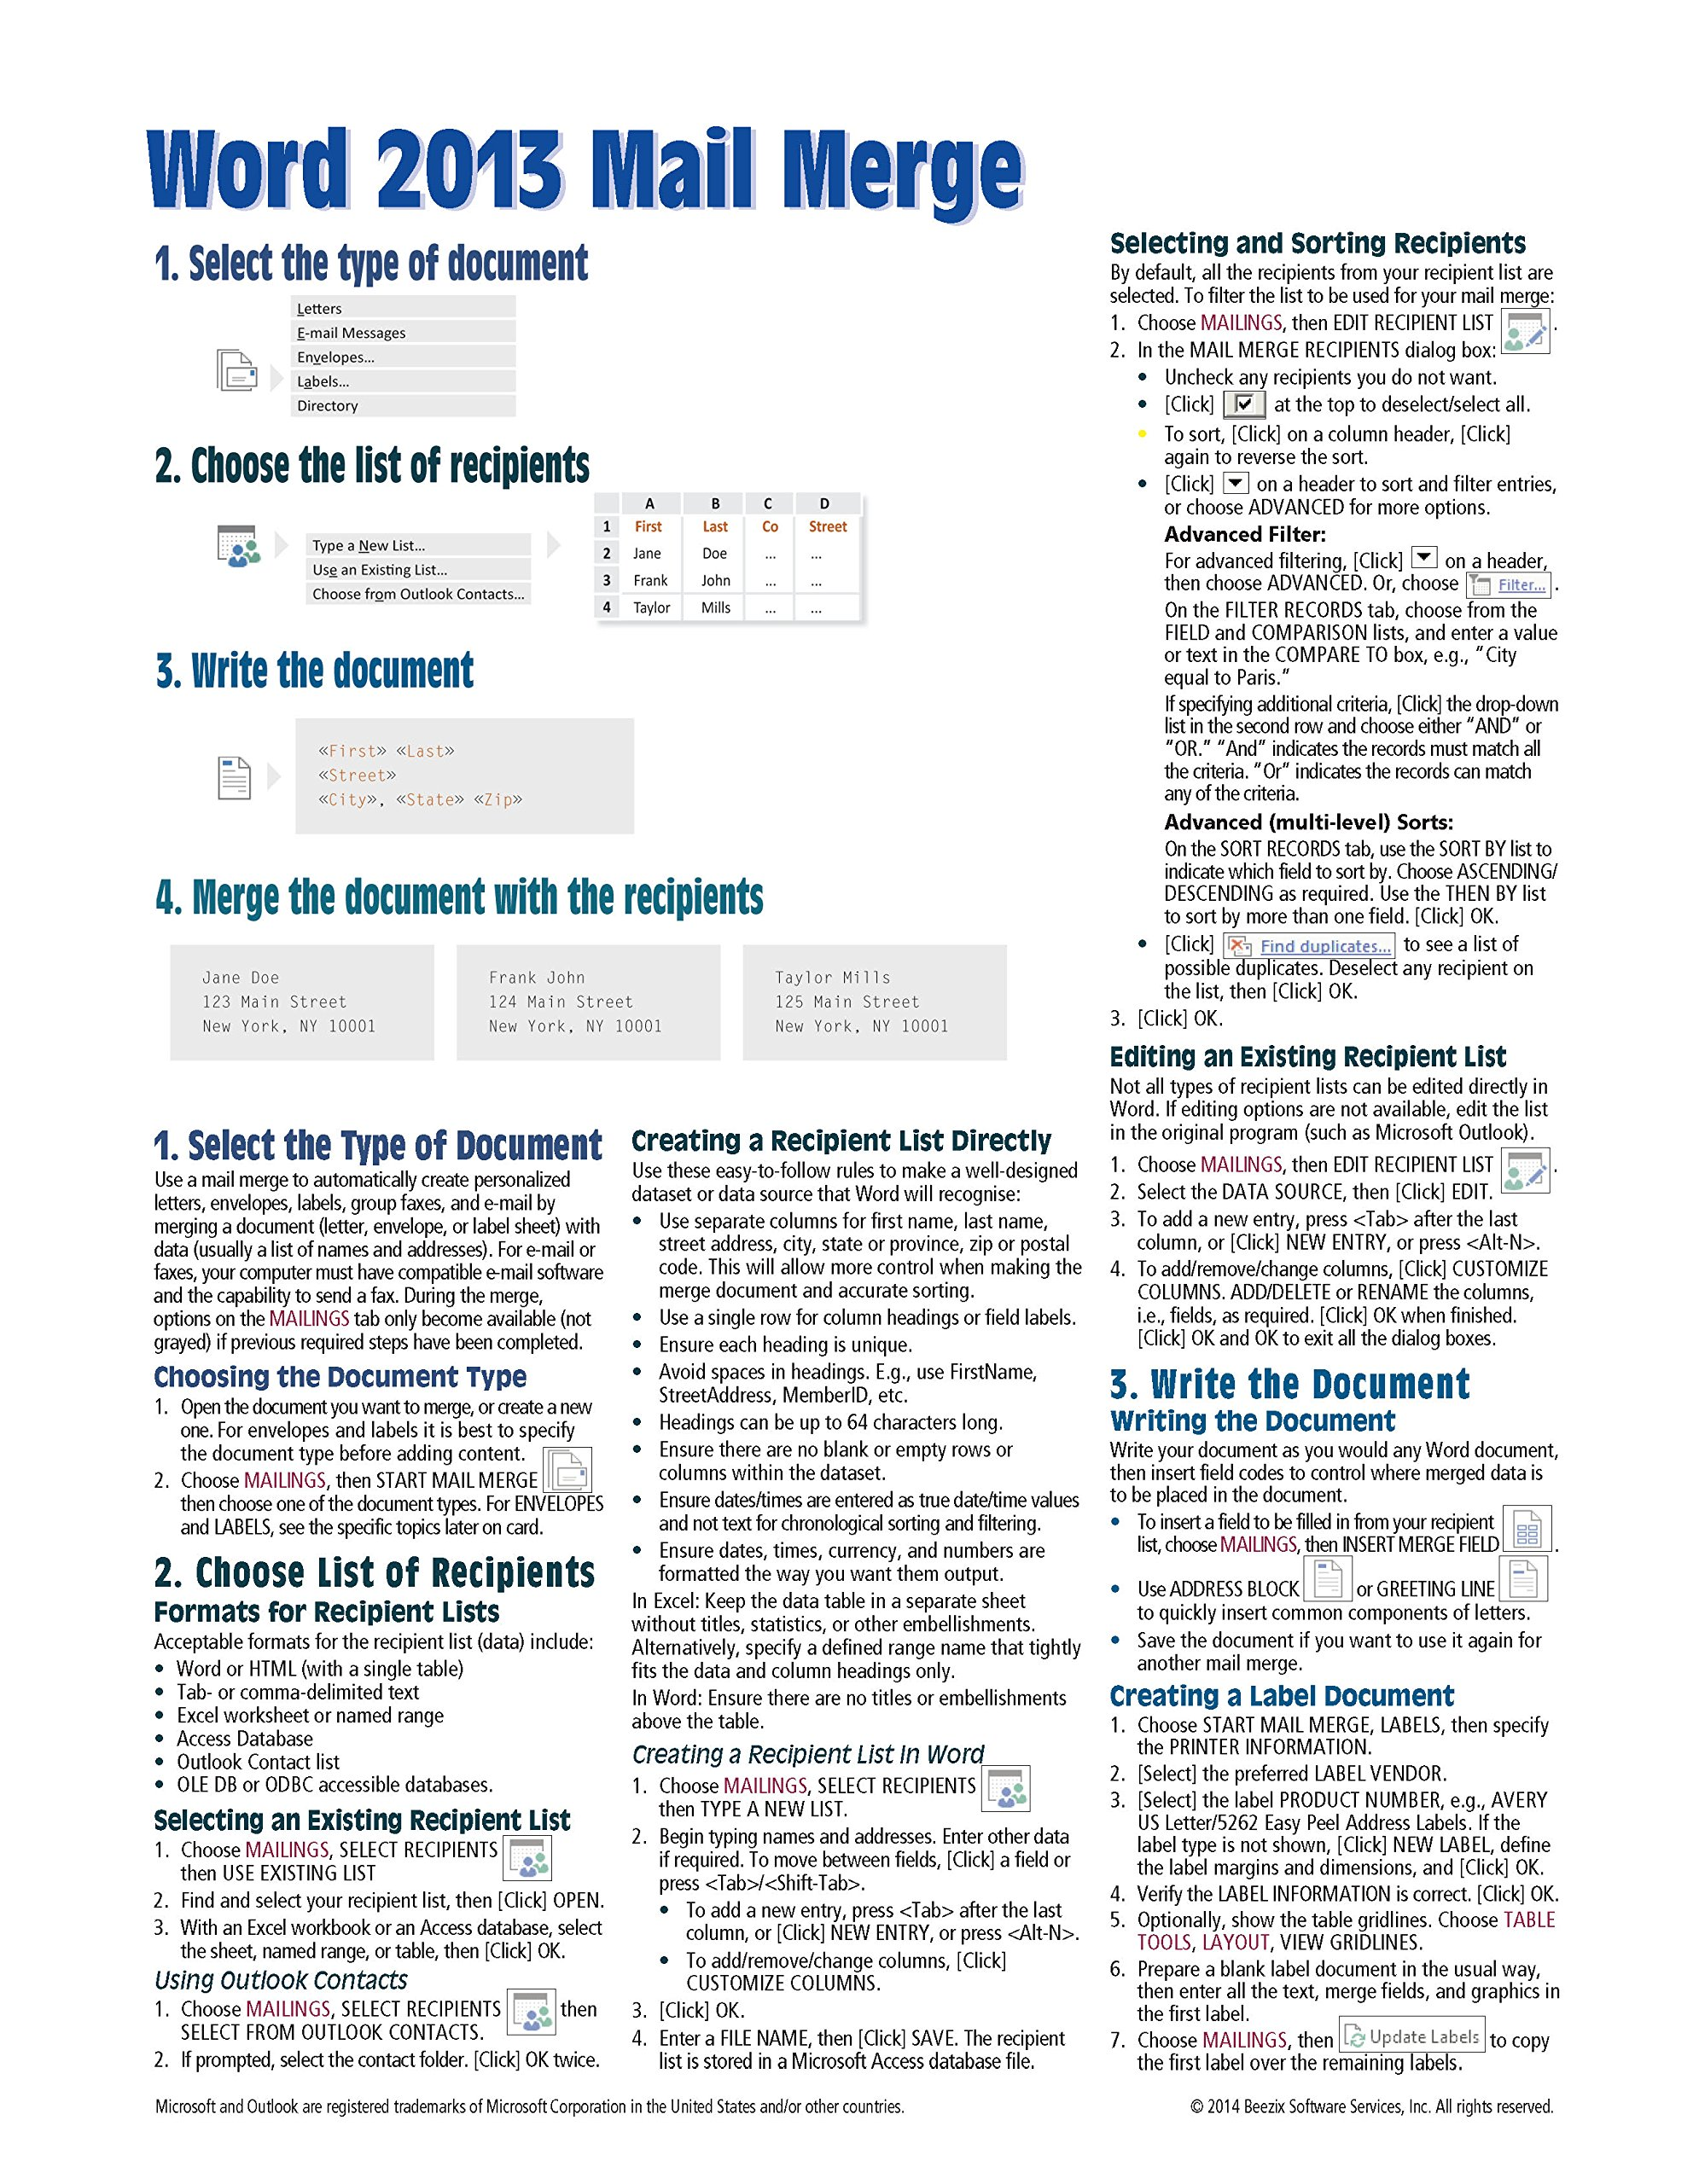 Microsoft Word 2013 Mail Merge Quick Reference Guide (Cheat Sheet of Instructions, Tips & Shortcuts - Laminated Card)